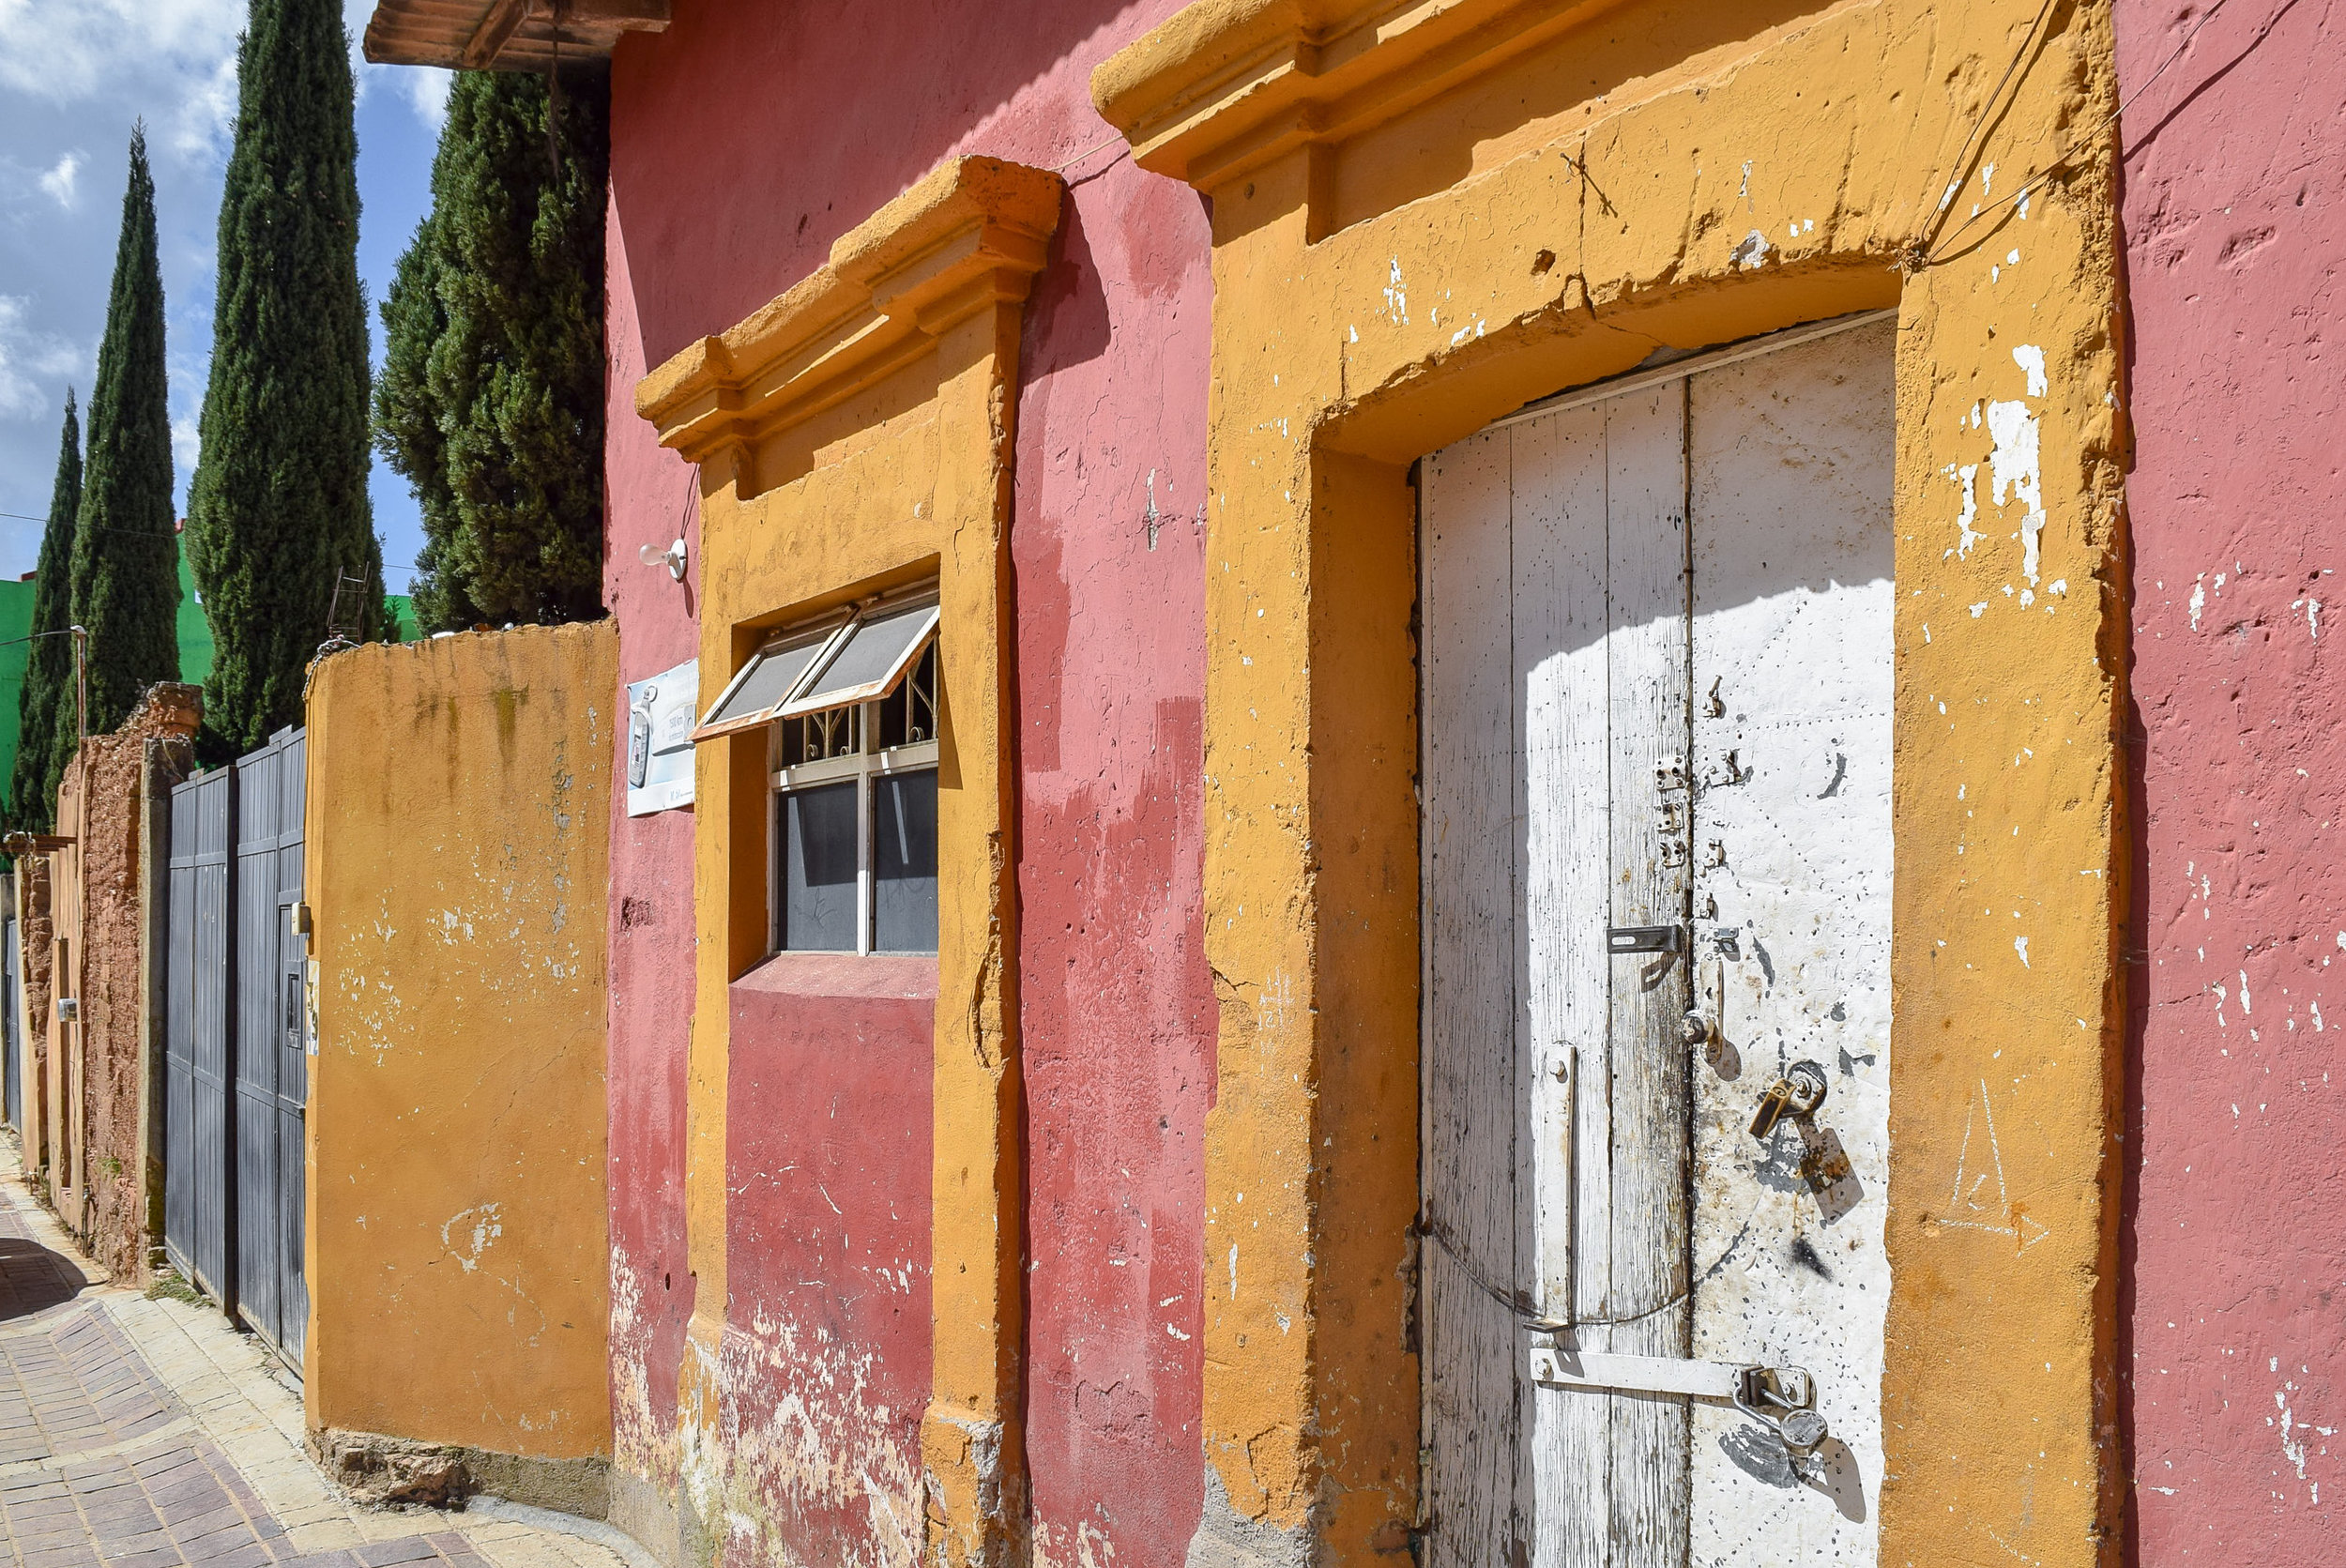 Colorful buildings in Santa Rosa de Lima, Mexico